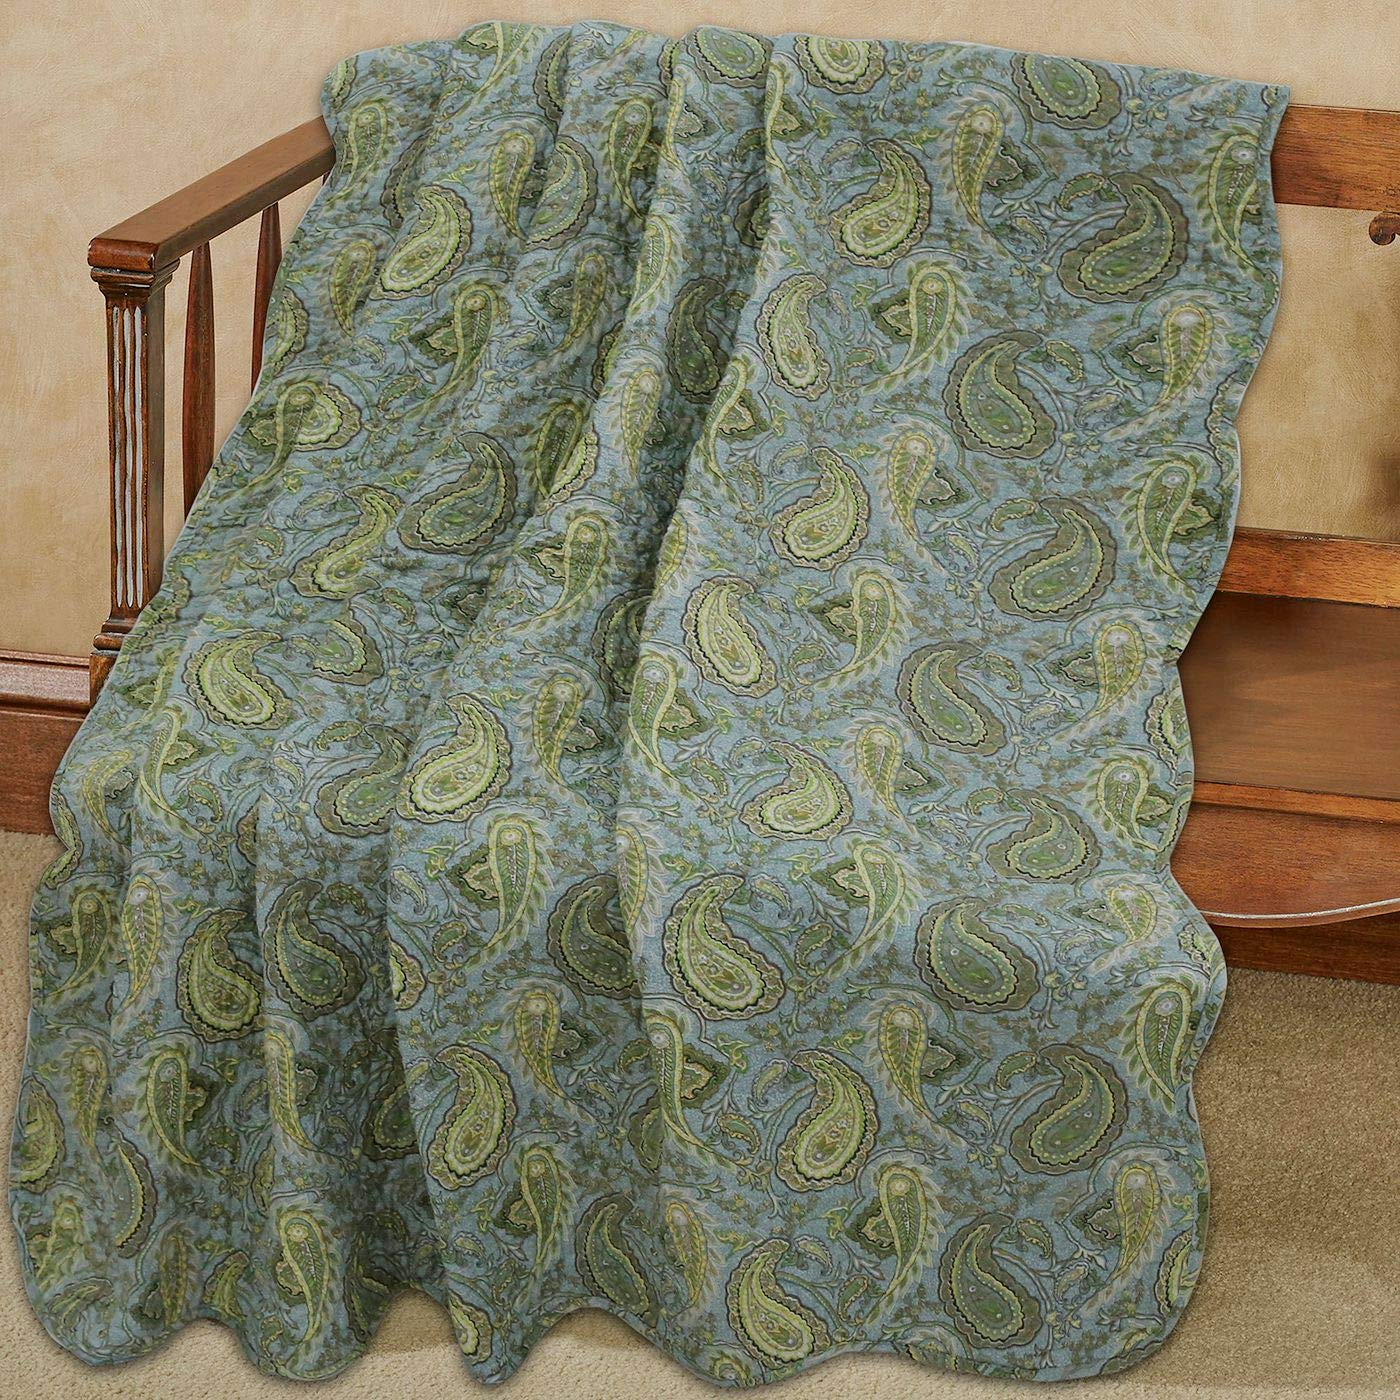 Amazon.com: Cozy Line Home Fashions Green Paisley Reversible 100% Cotton Quilted Throw Blanket 60